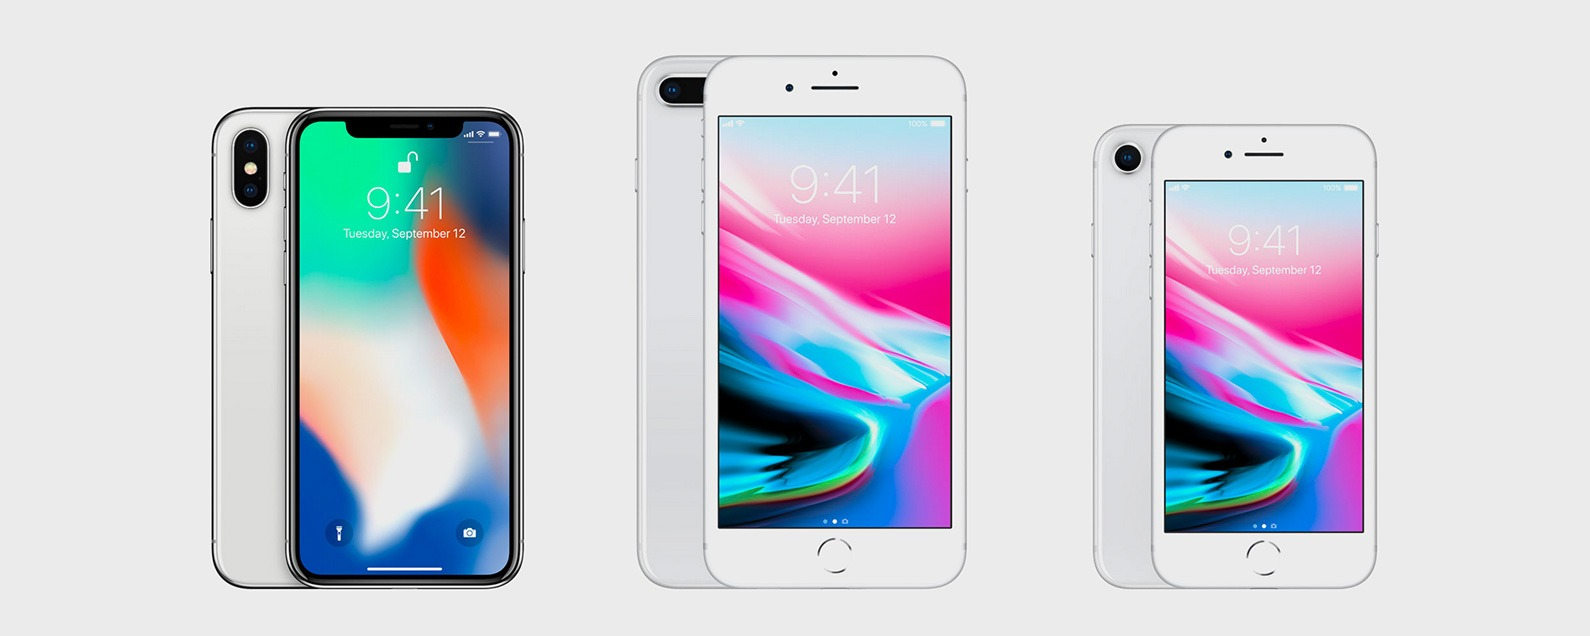 How to Sell or Trade In Your iPhone So You Can Get the New